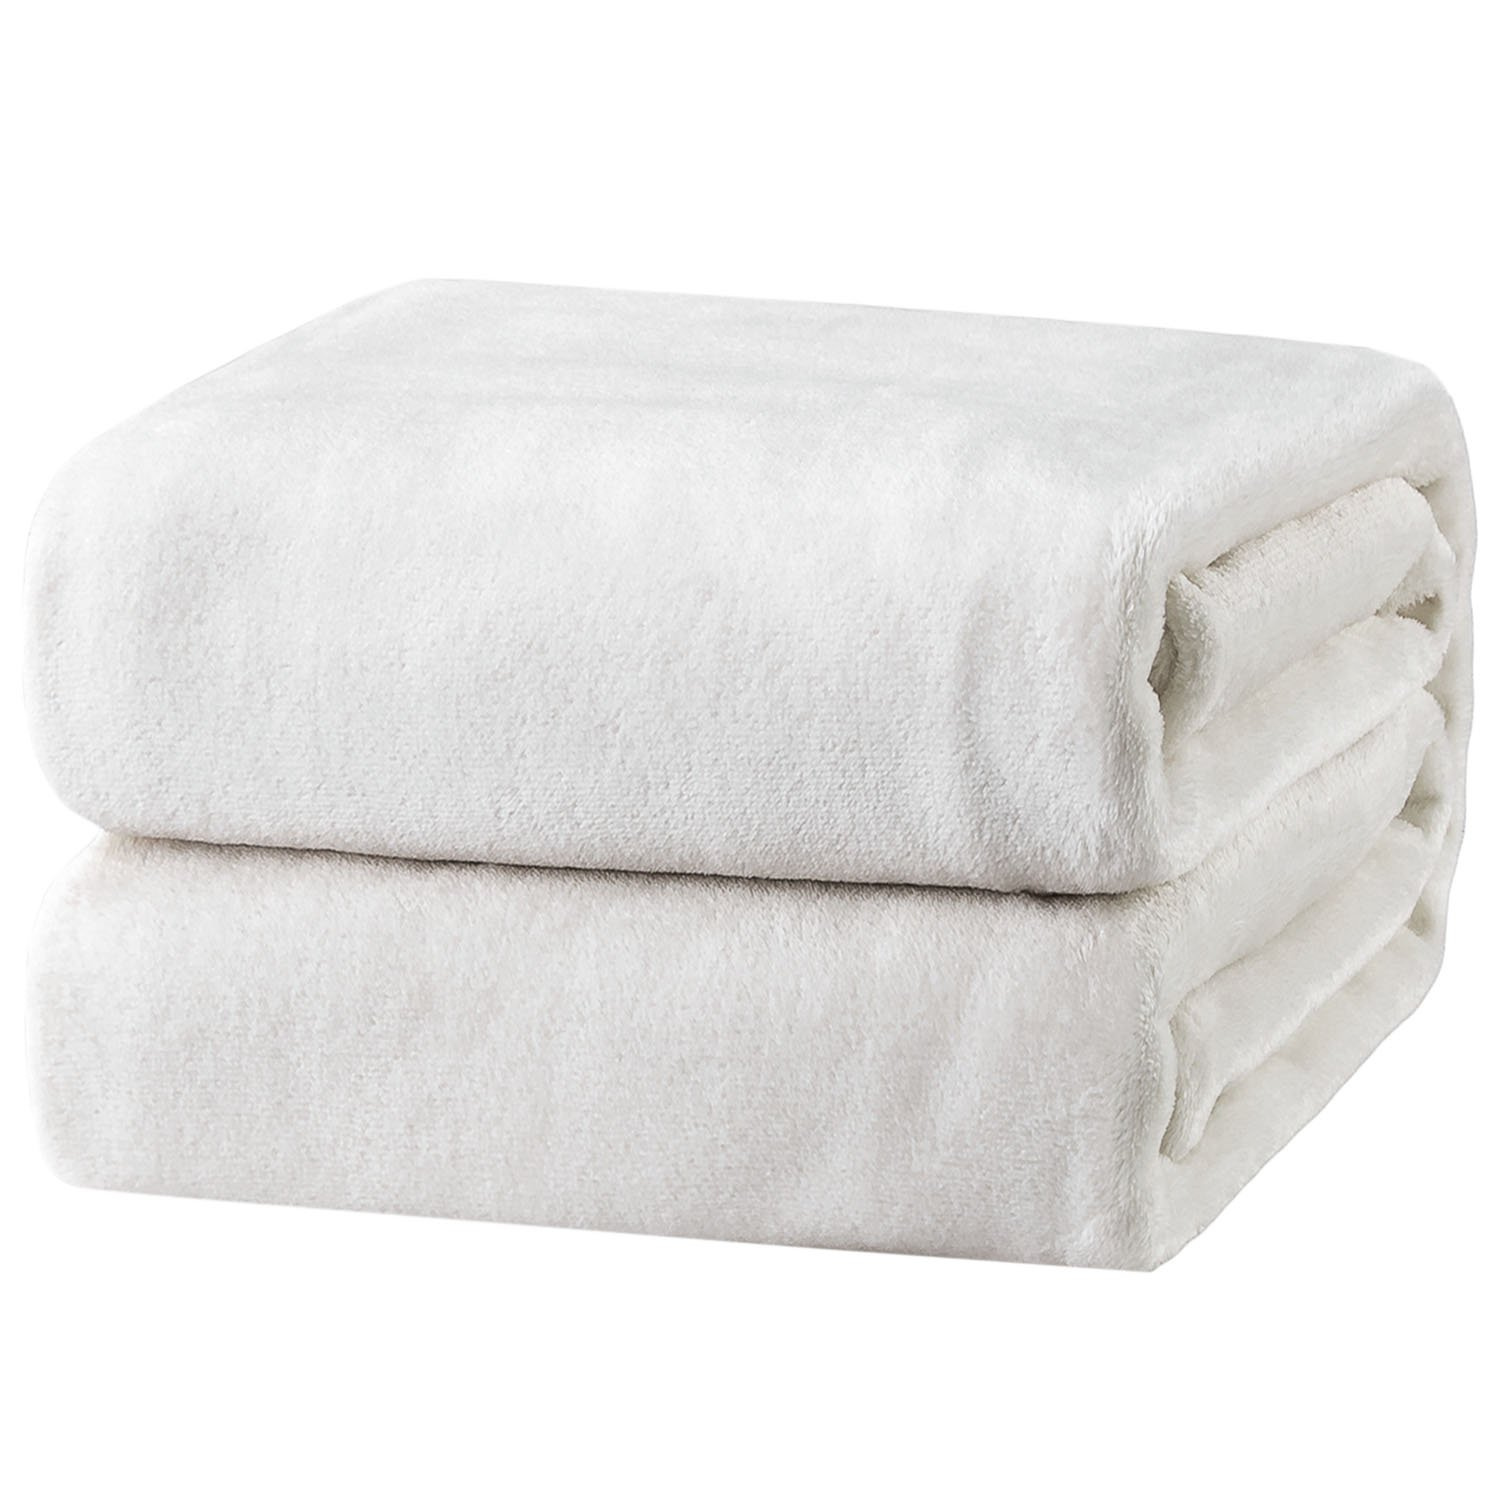 Bedsure Flannel Fleece Luxury Blanket White Twin Size Lightweight Cozy Plush Microfiber Solid Blanket